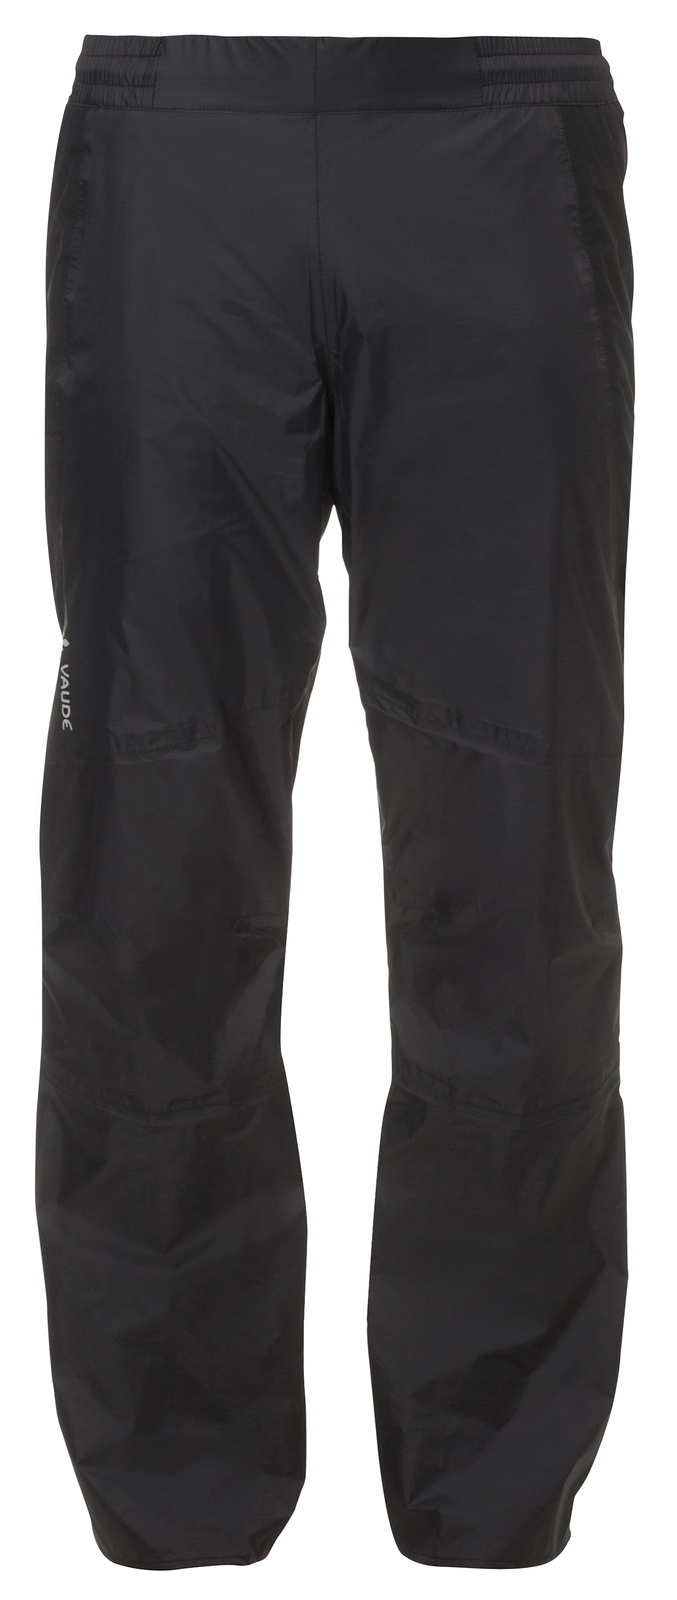 VAUDE Men´s Spray Pants III black Größe XXXL - schneider-sports